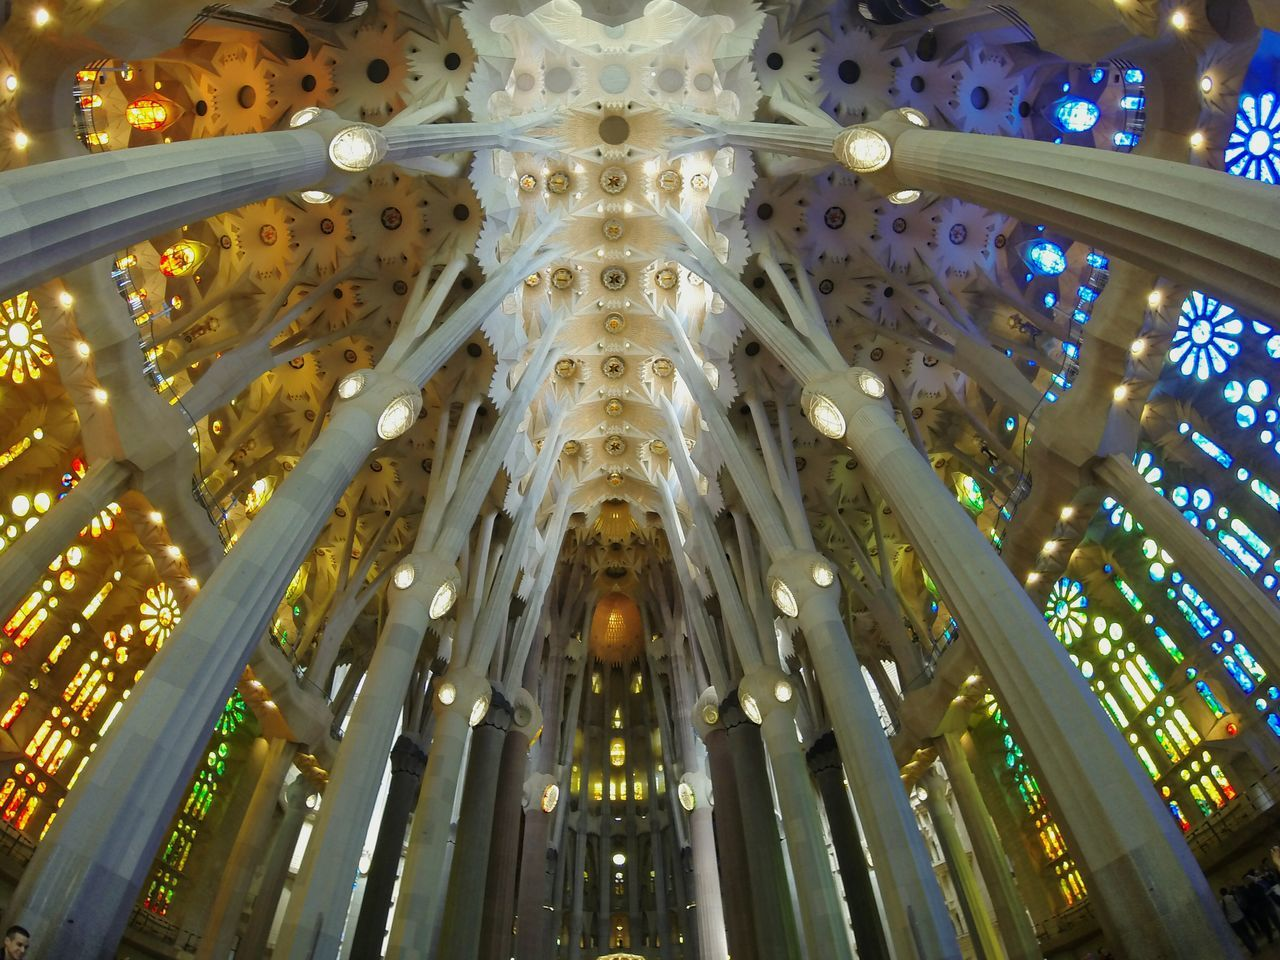 Sagrada Familia ⛪ Architecture Indoors  Place Of Worship Spirituality Low Angle View Travel Destinations DayReligion España🇪🇸 Sagrada Familia Sagradafamilia Sagradafamiliachurch Gaudi Barcelona Barcelona, Spain SPAIN Church Gopro GoPro Hero3+ Goprooftheday Goprohero3 Goprophotography Low Angle View Ceiling Place Of Worship First Eyeem Photo